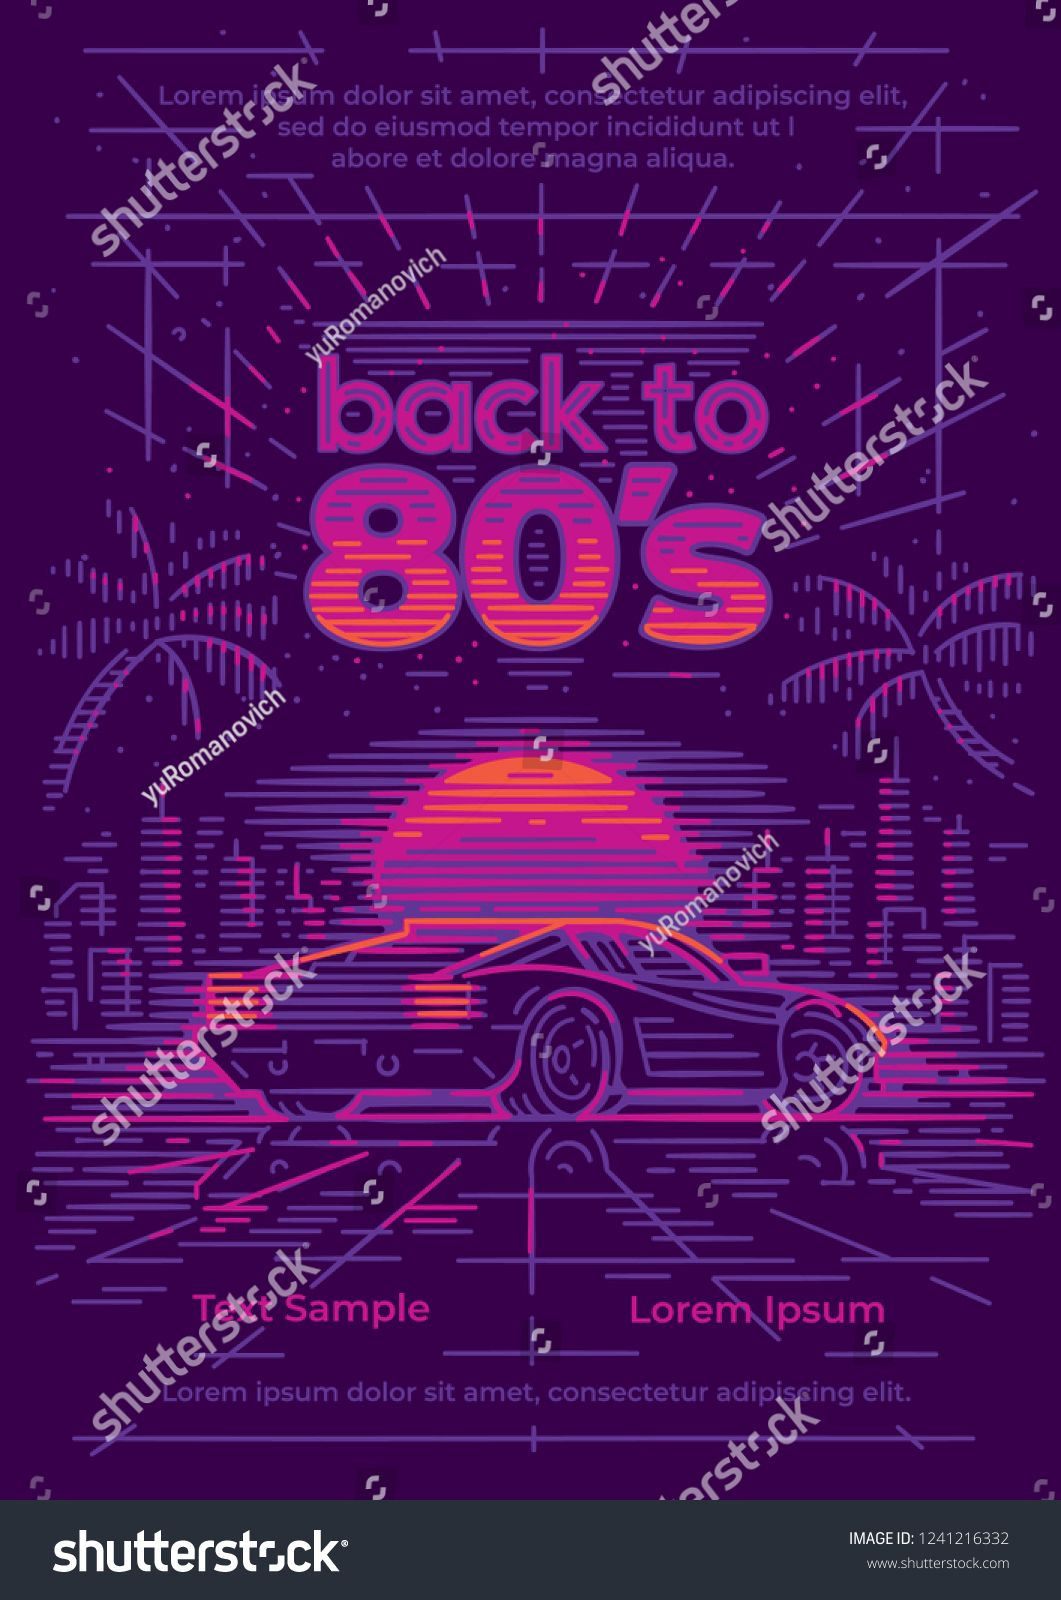 Back to 80's neon style poster/card/flyer template  Neon